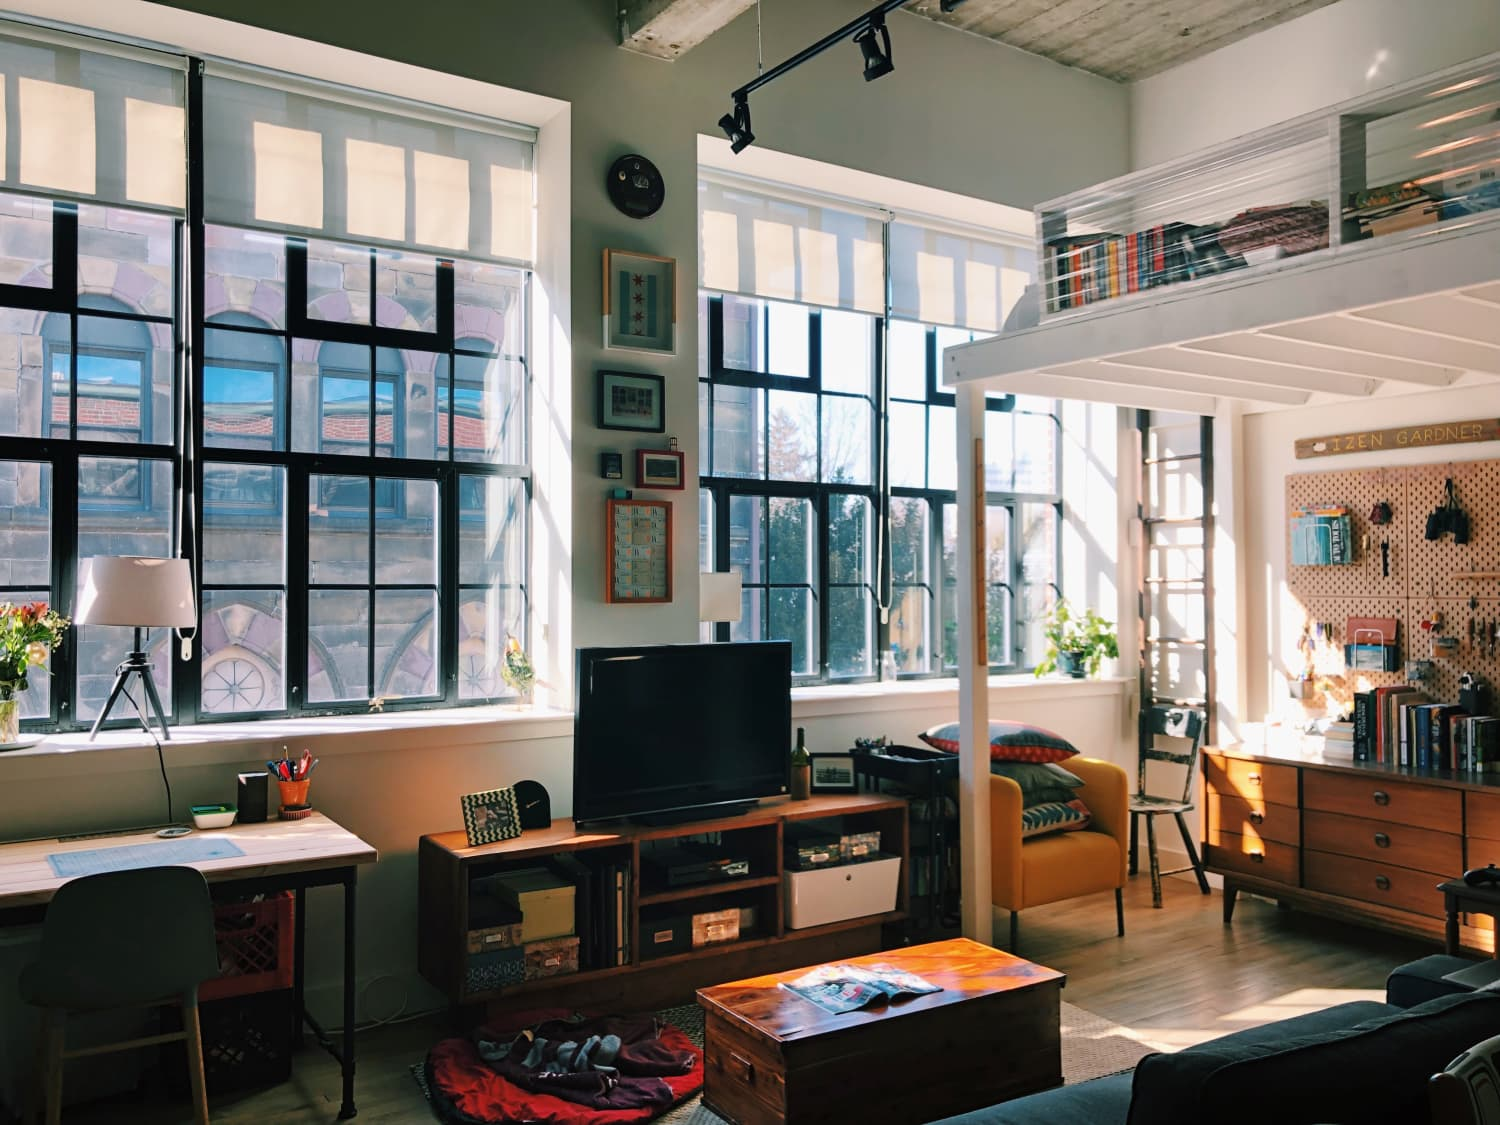 A Small Boston Studio Apartment Has One of the Best DIY Bedroom Lofts Ever